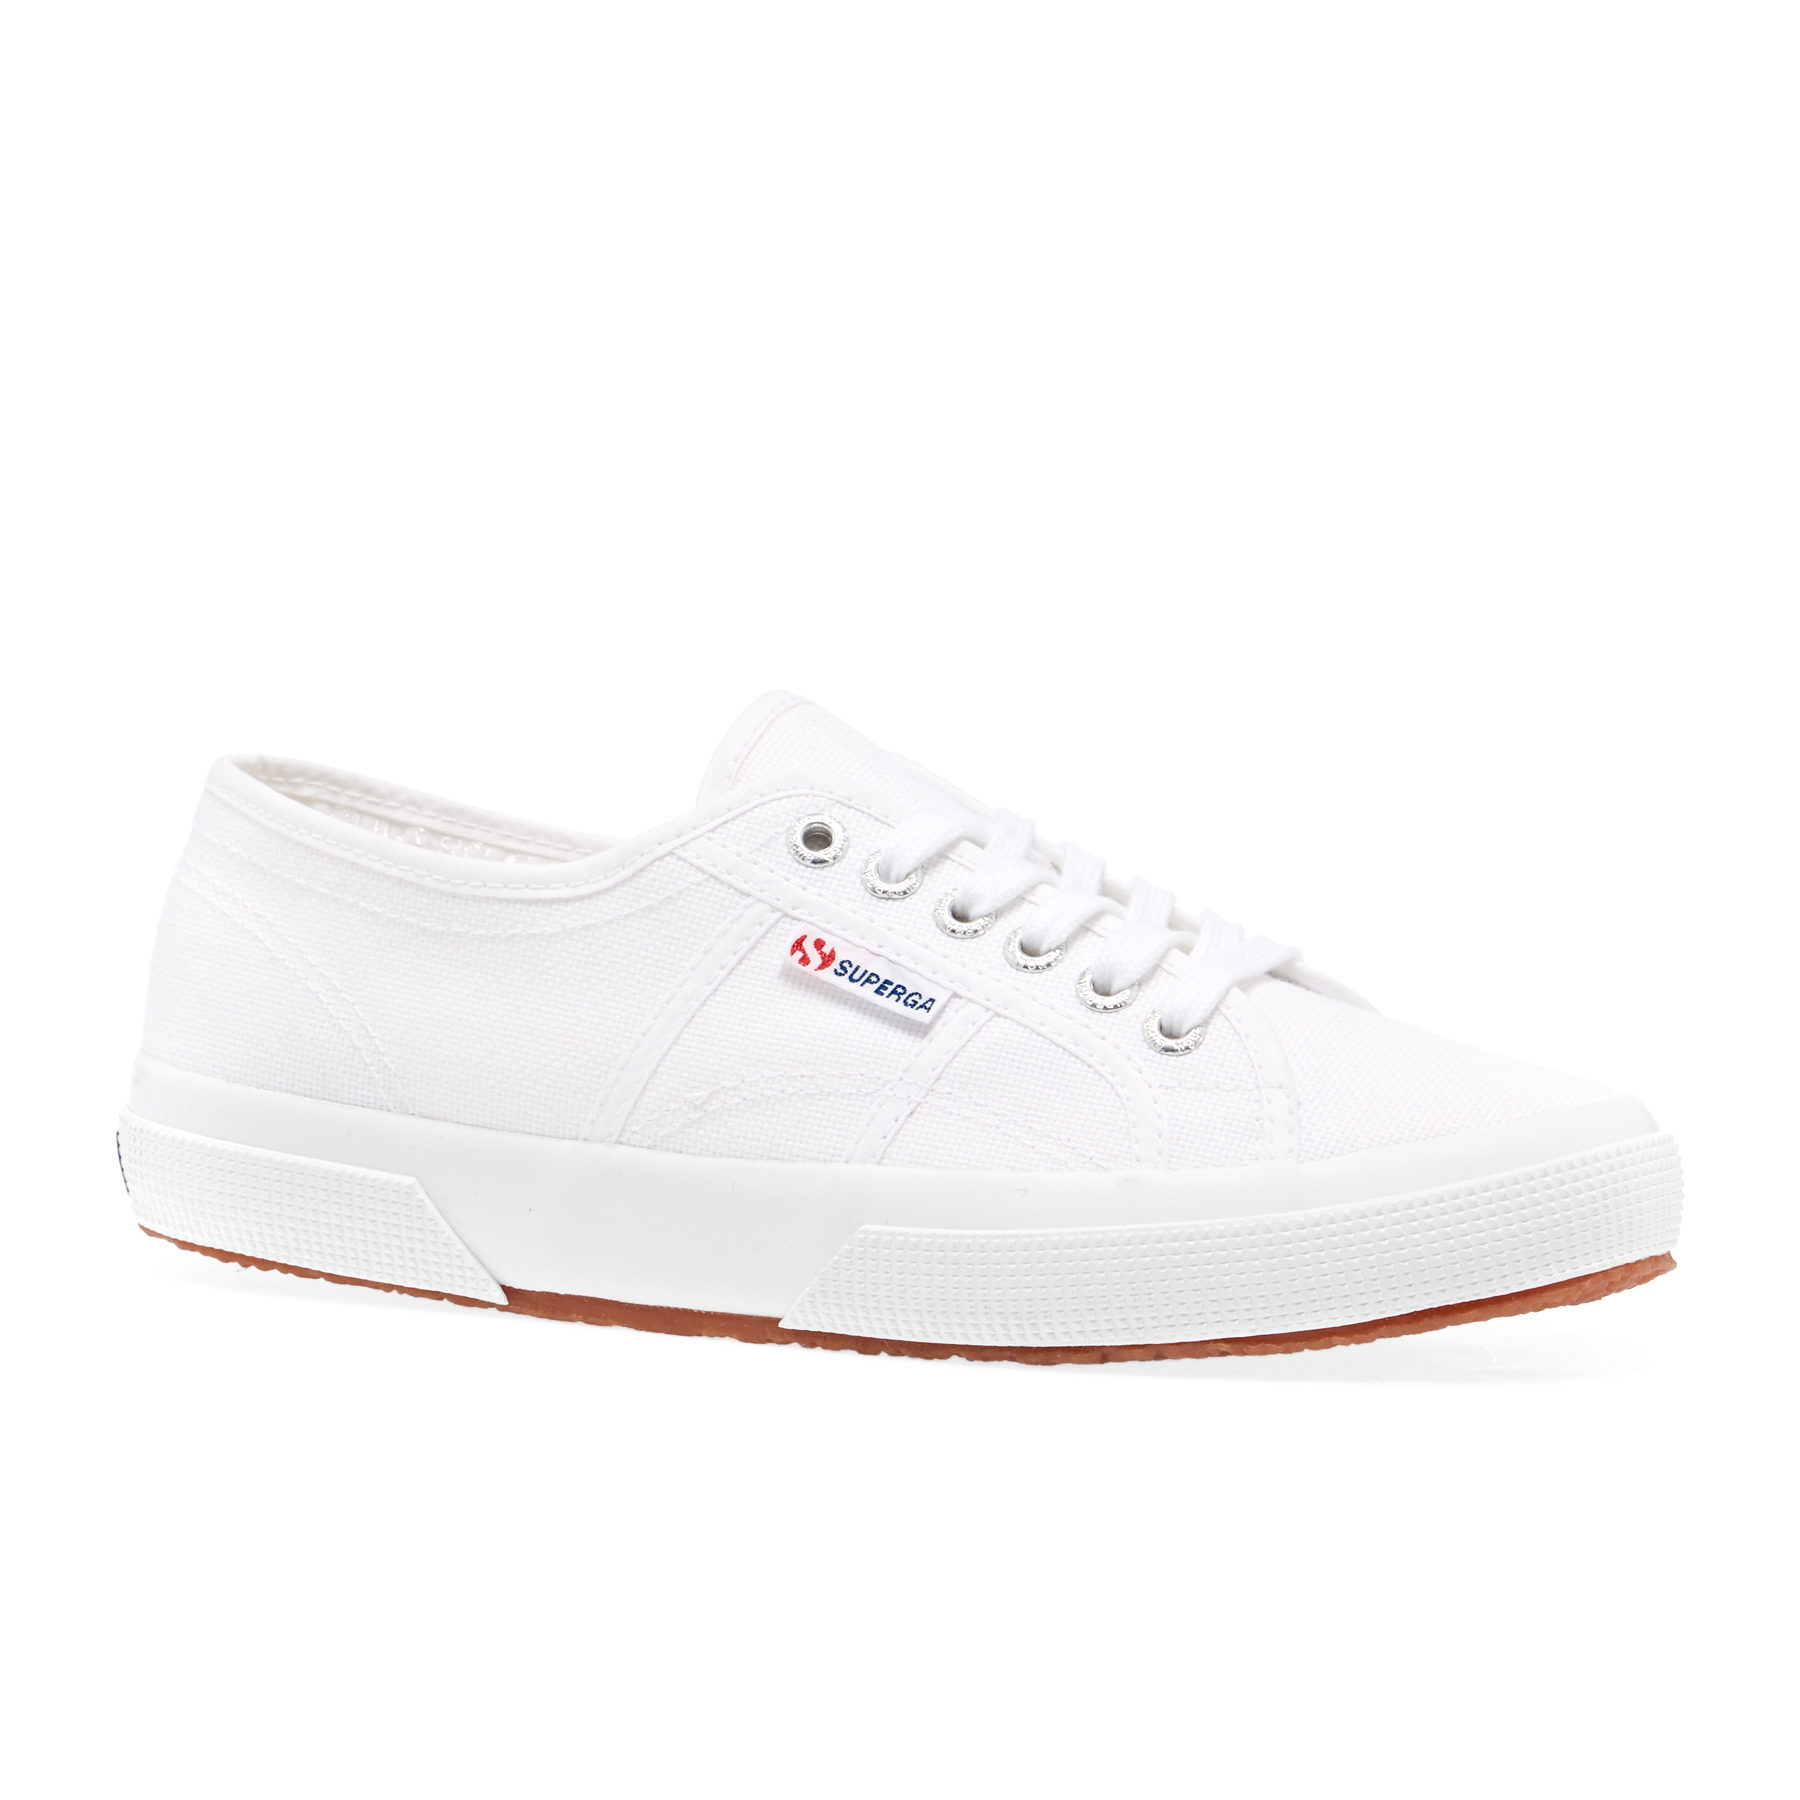 Superga 2750 Cotu Shoes - Free Delivery